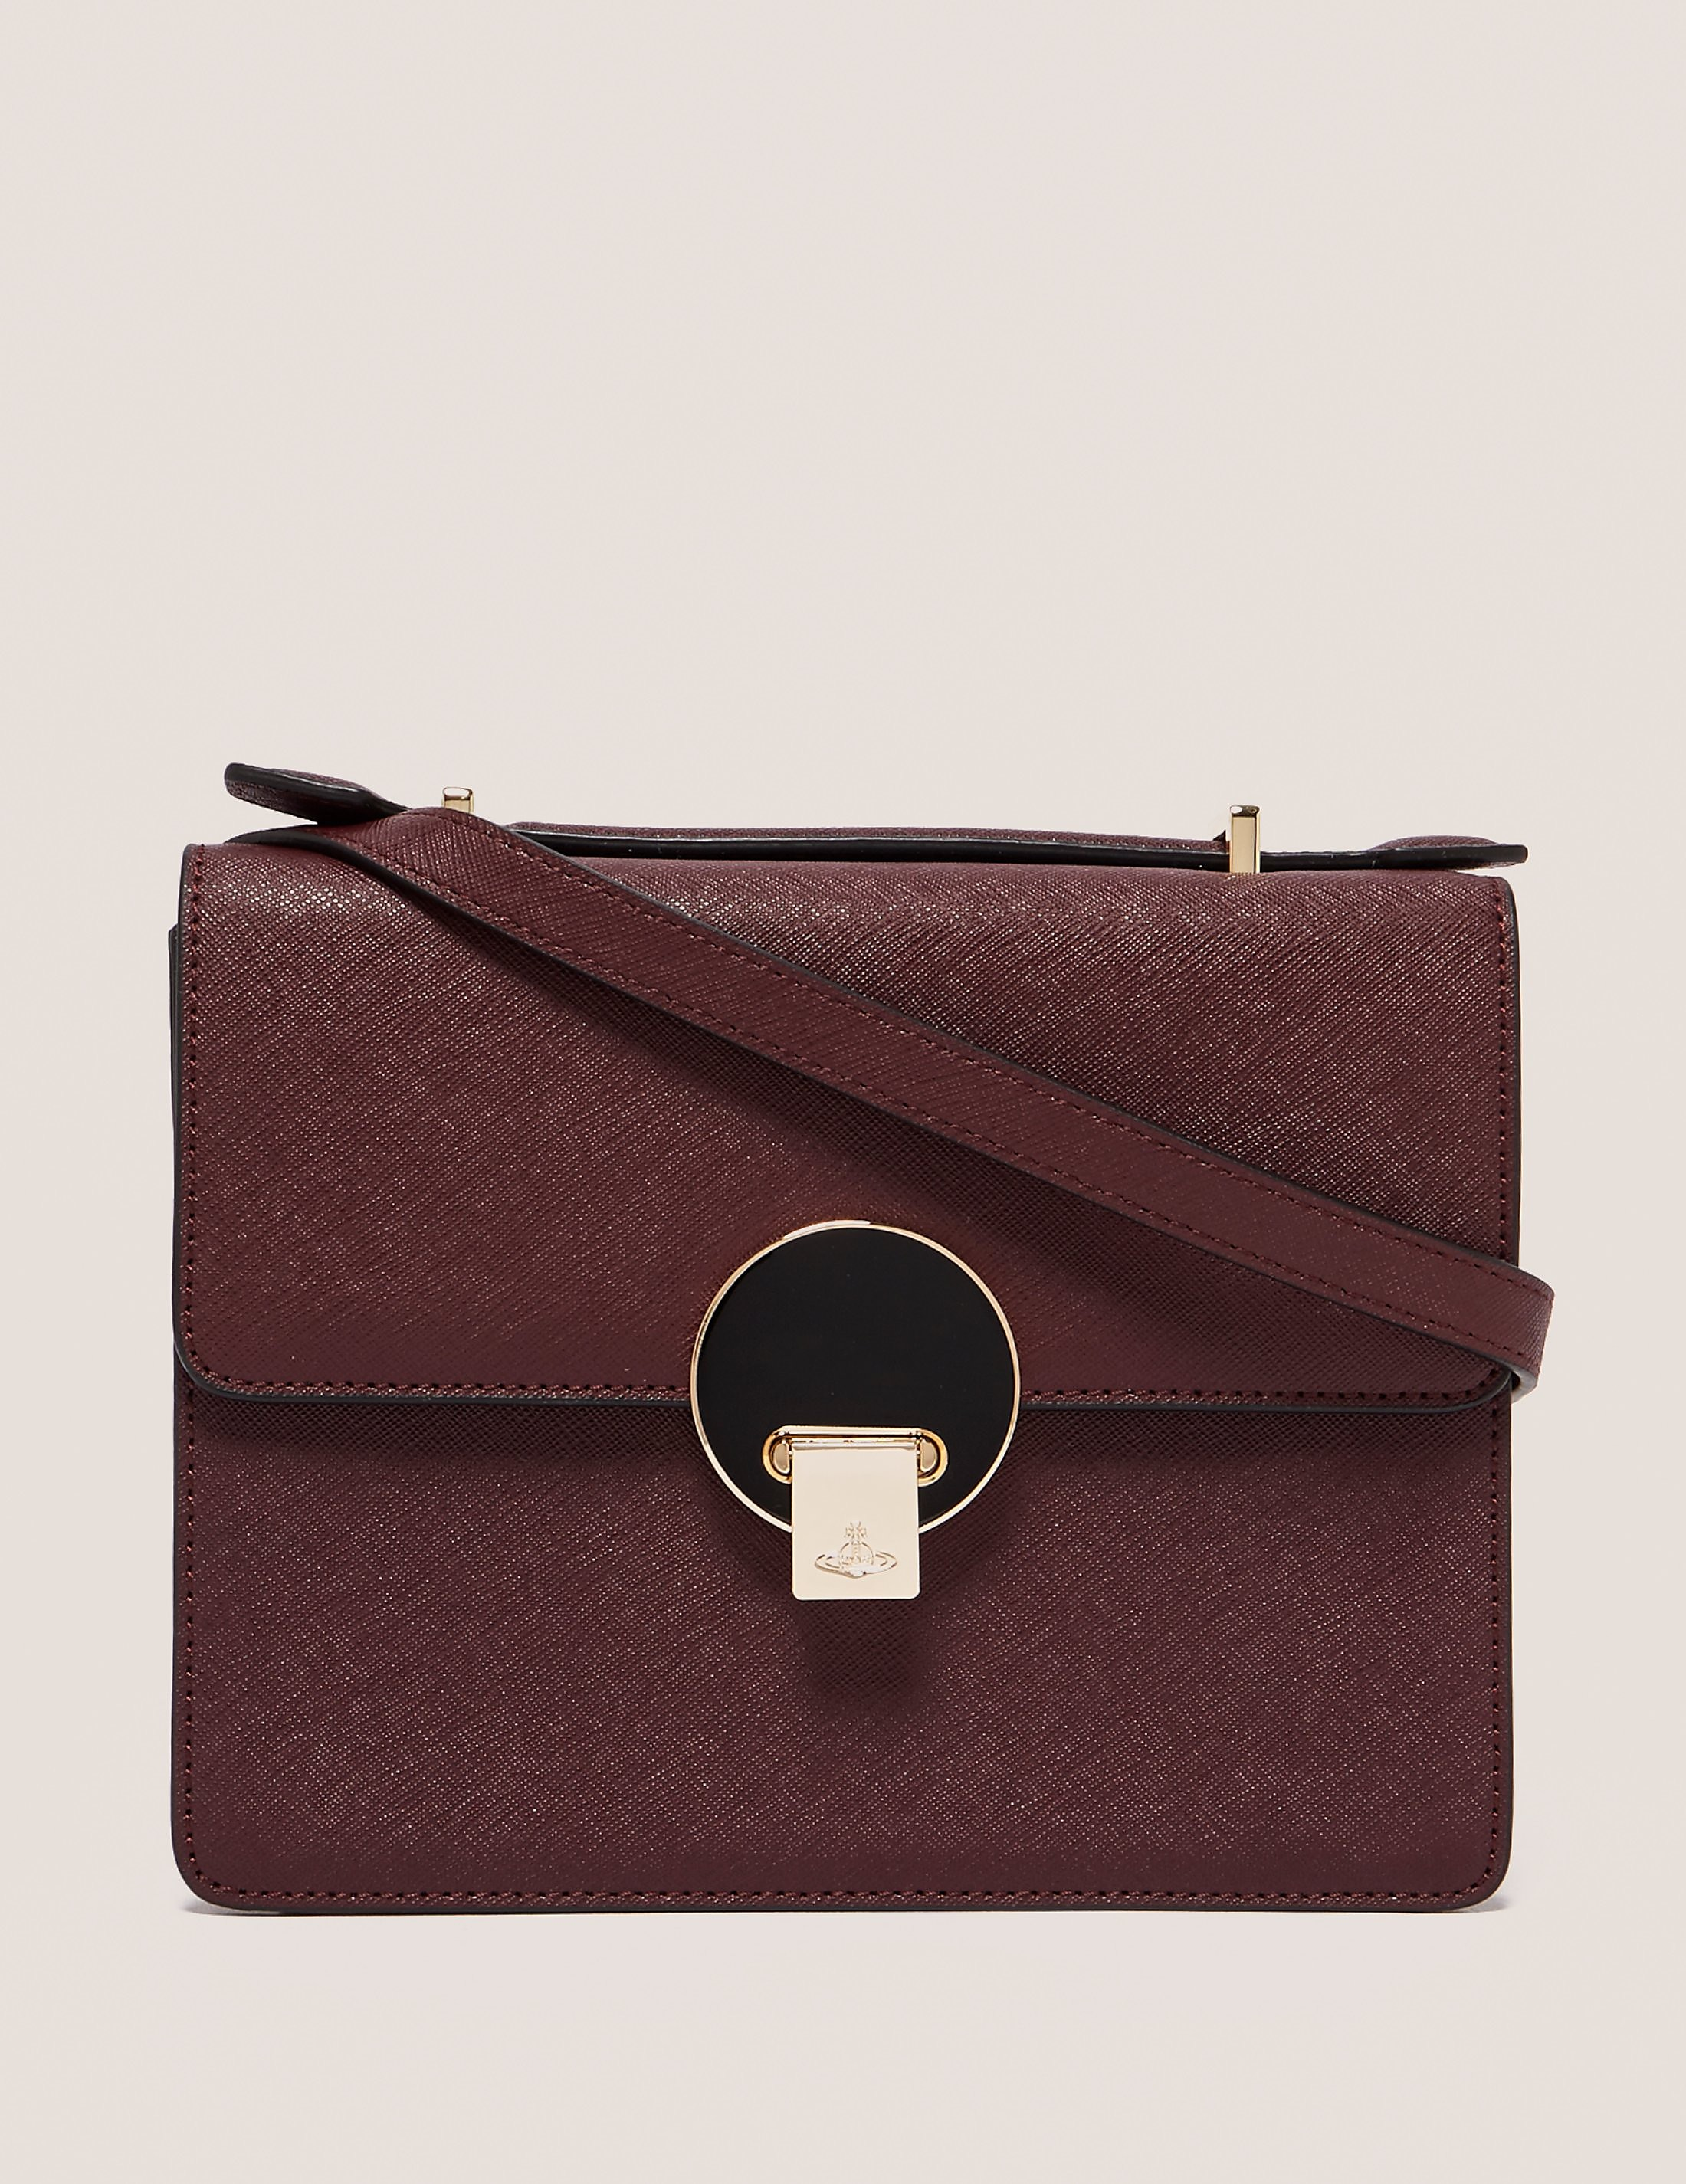 Vivienne Westwood Saffiano Shoulder Bag